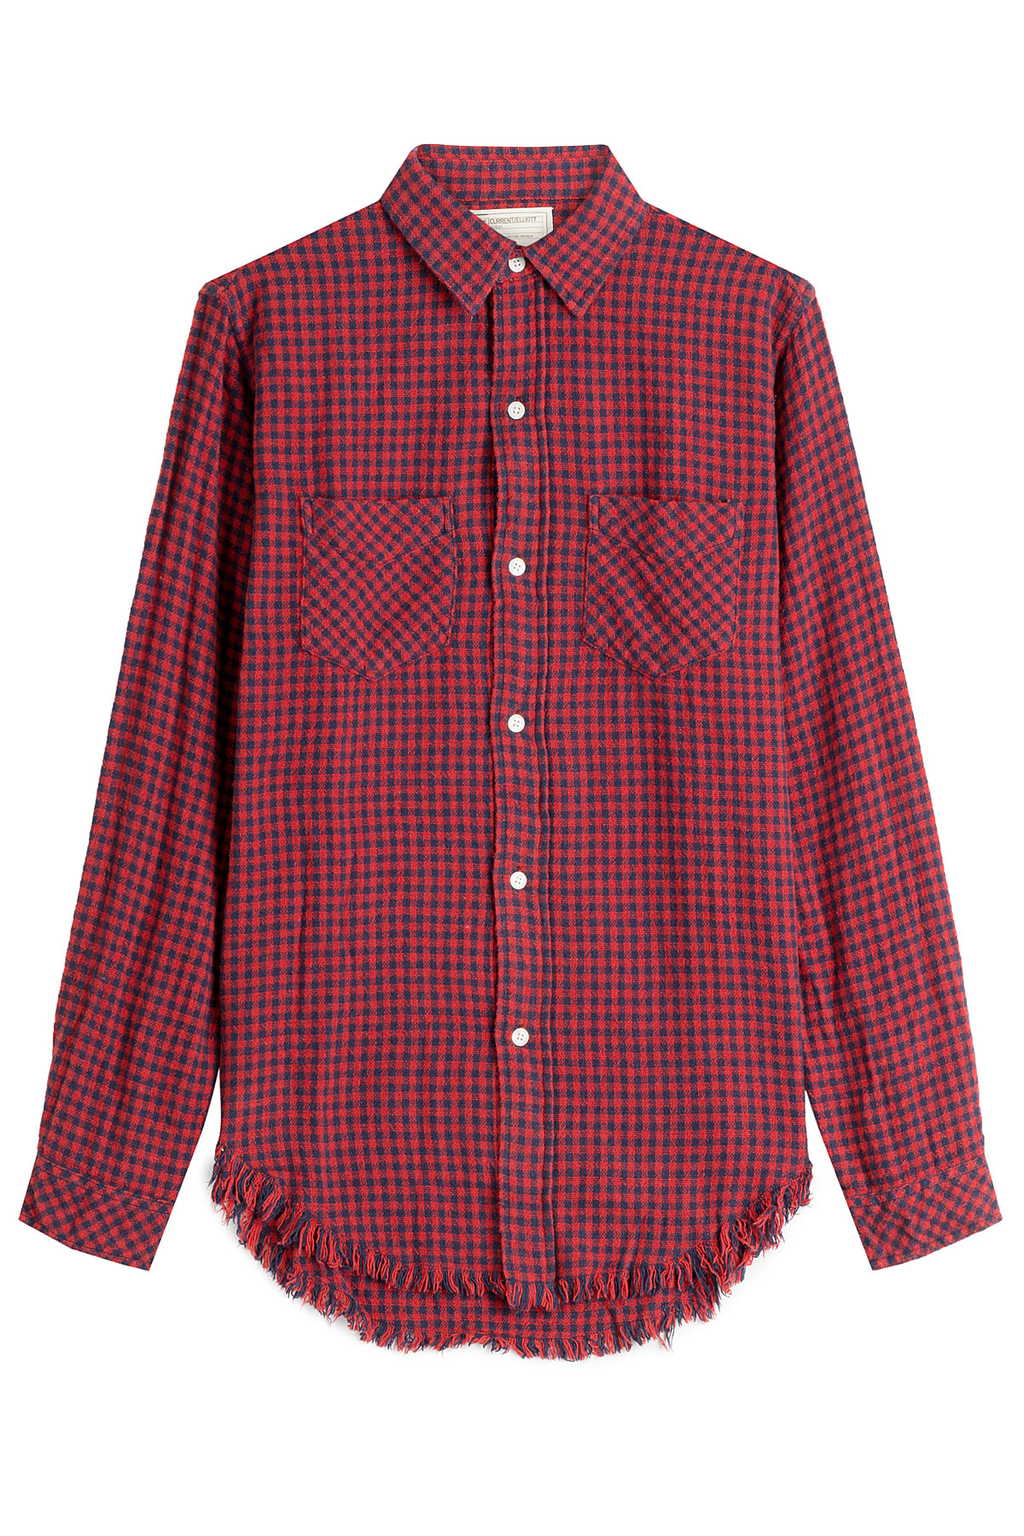 Printed Shirt With Frayed Hem Red - neckline: shirt collar/peter pan/zip with opening; pattern: checked/gingham; style: shirt; predominant colour: true red; occasions: casual; length: standard; fibres: cotton - 100%; fit: body skimming; sleeve length: long sleeve; sleeve style: standard; texture group: cotton feel fabrics; pattern type: fabric; pattern size: standard; season: a/w 2016; wardrobe: highlight